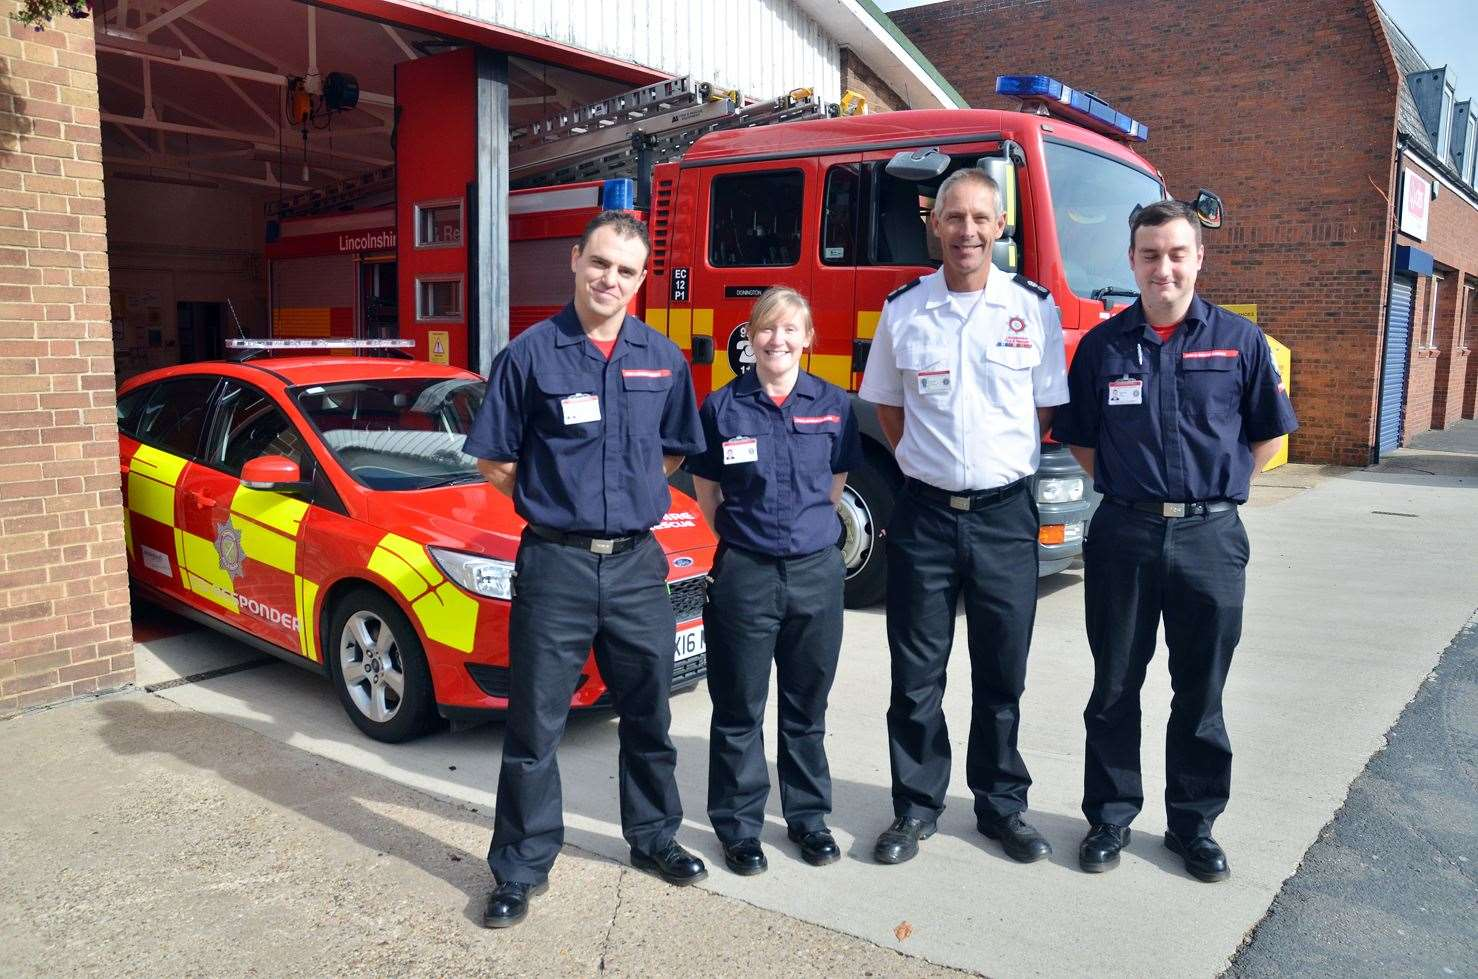 Donington firefighters will be washing cars to raise money for charity